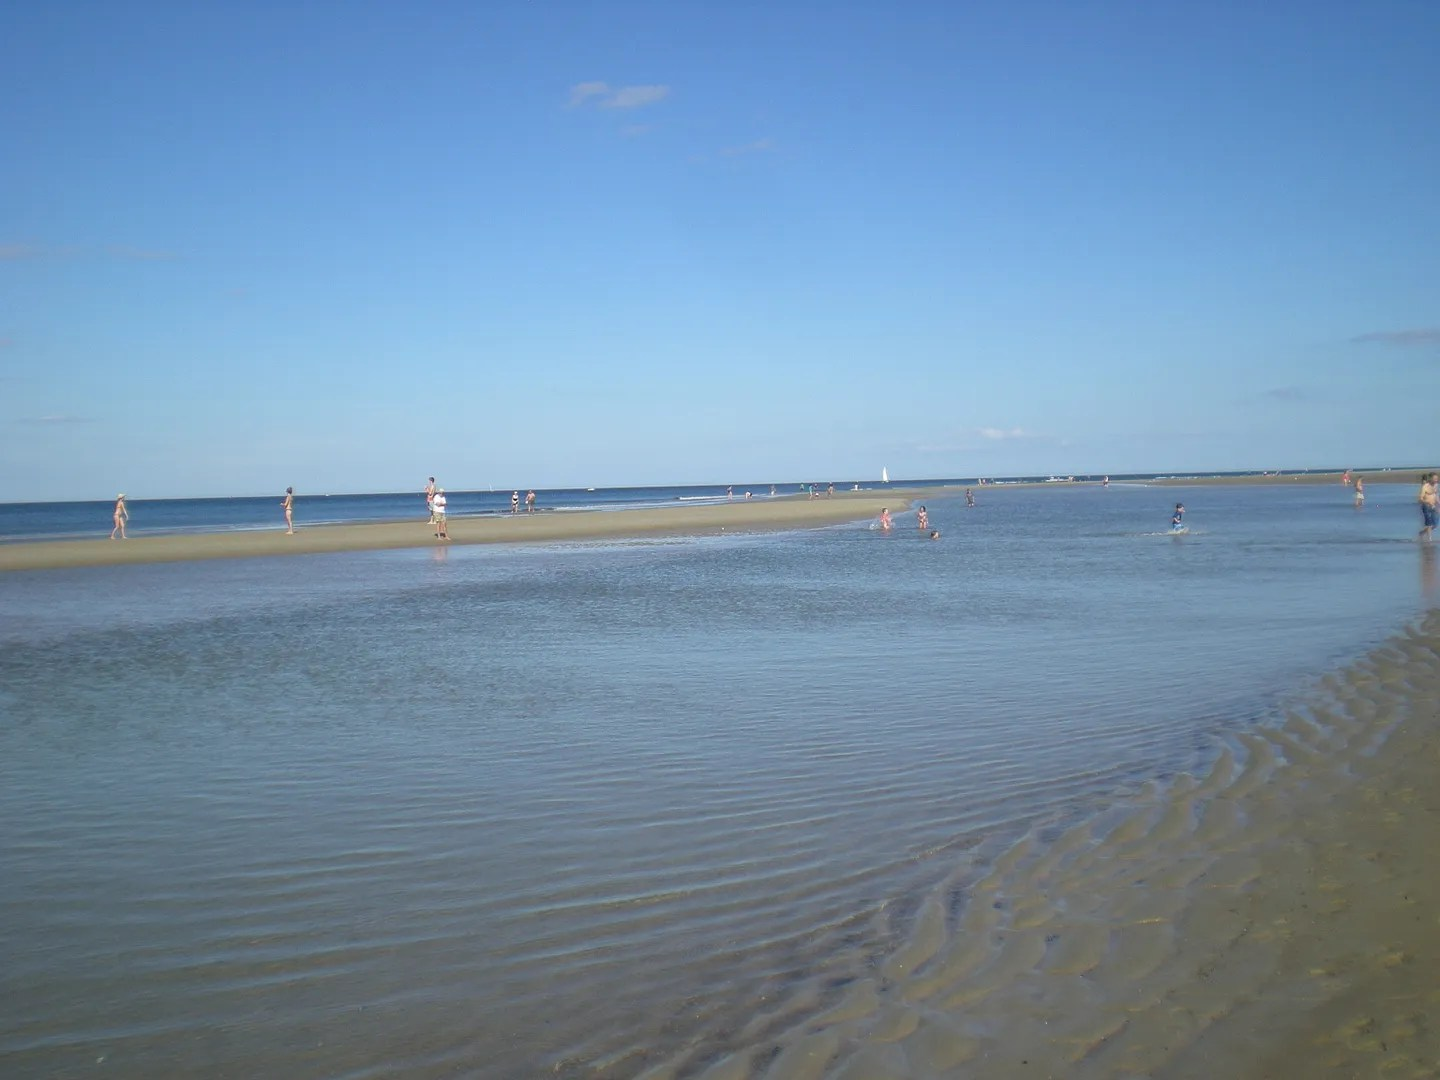 tidal pool and sandbar on beach